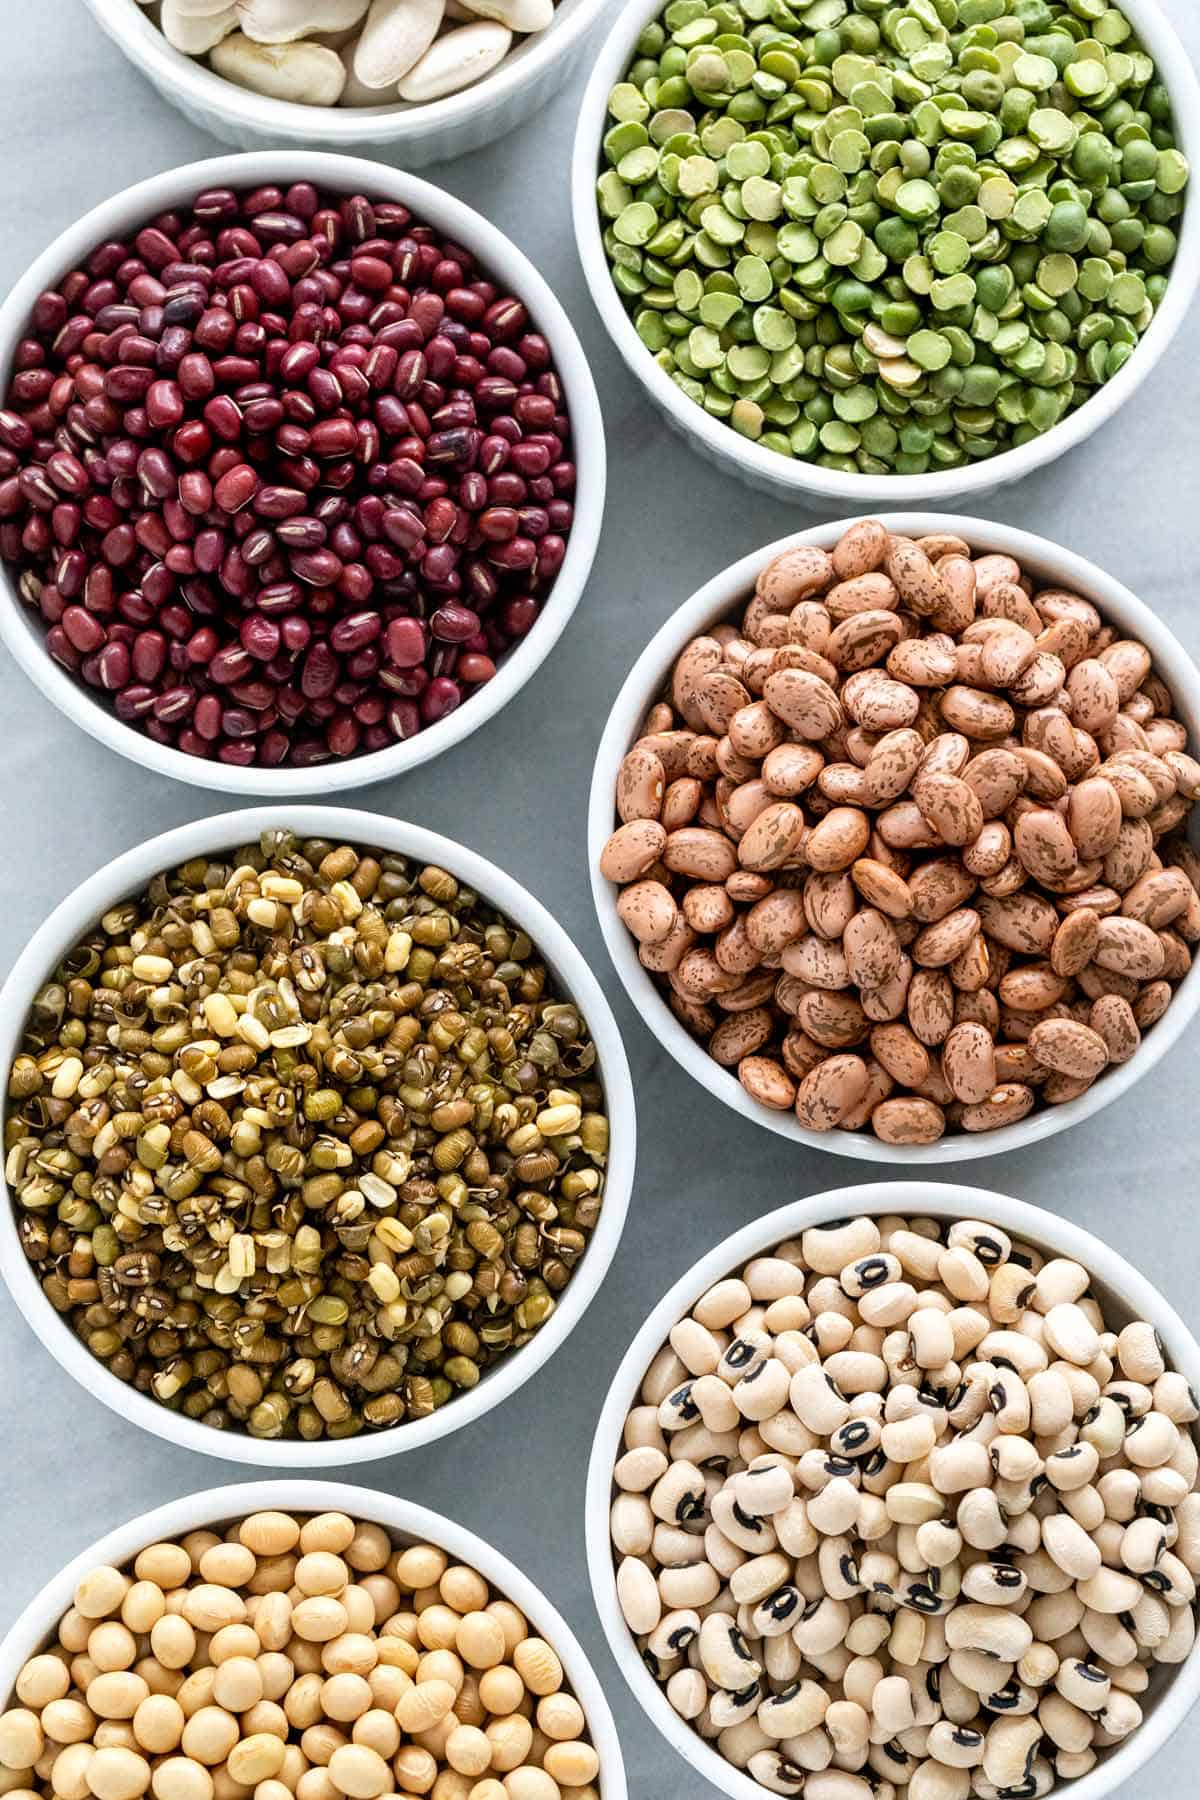 18 Types of Beans